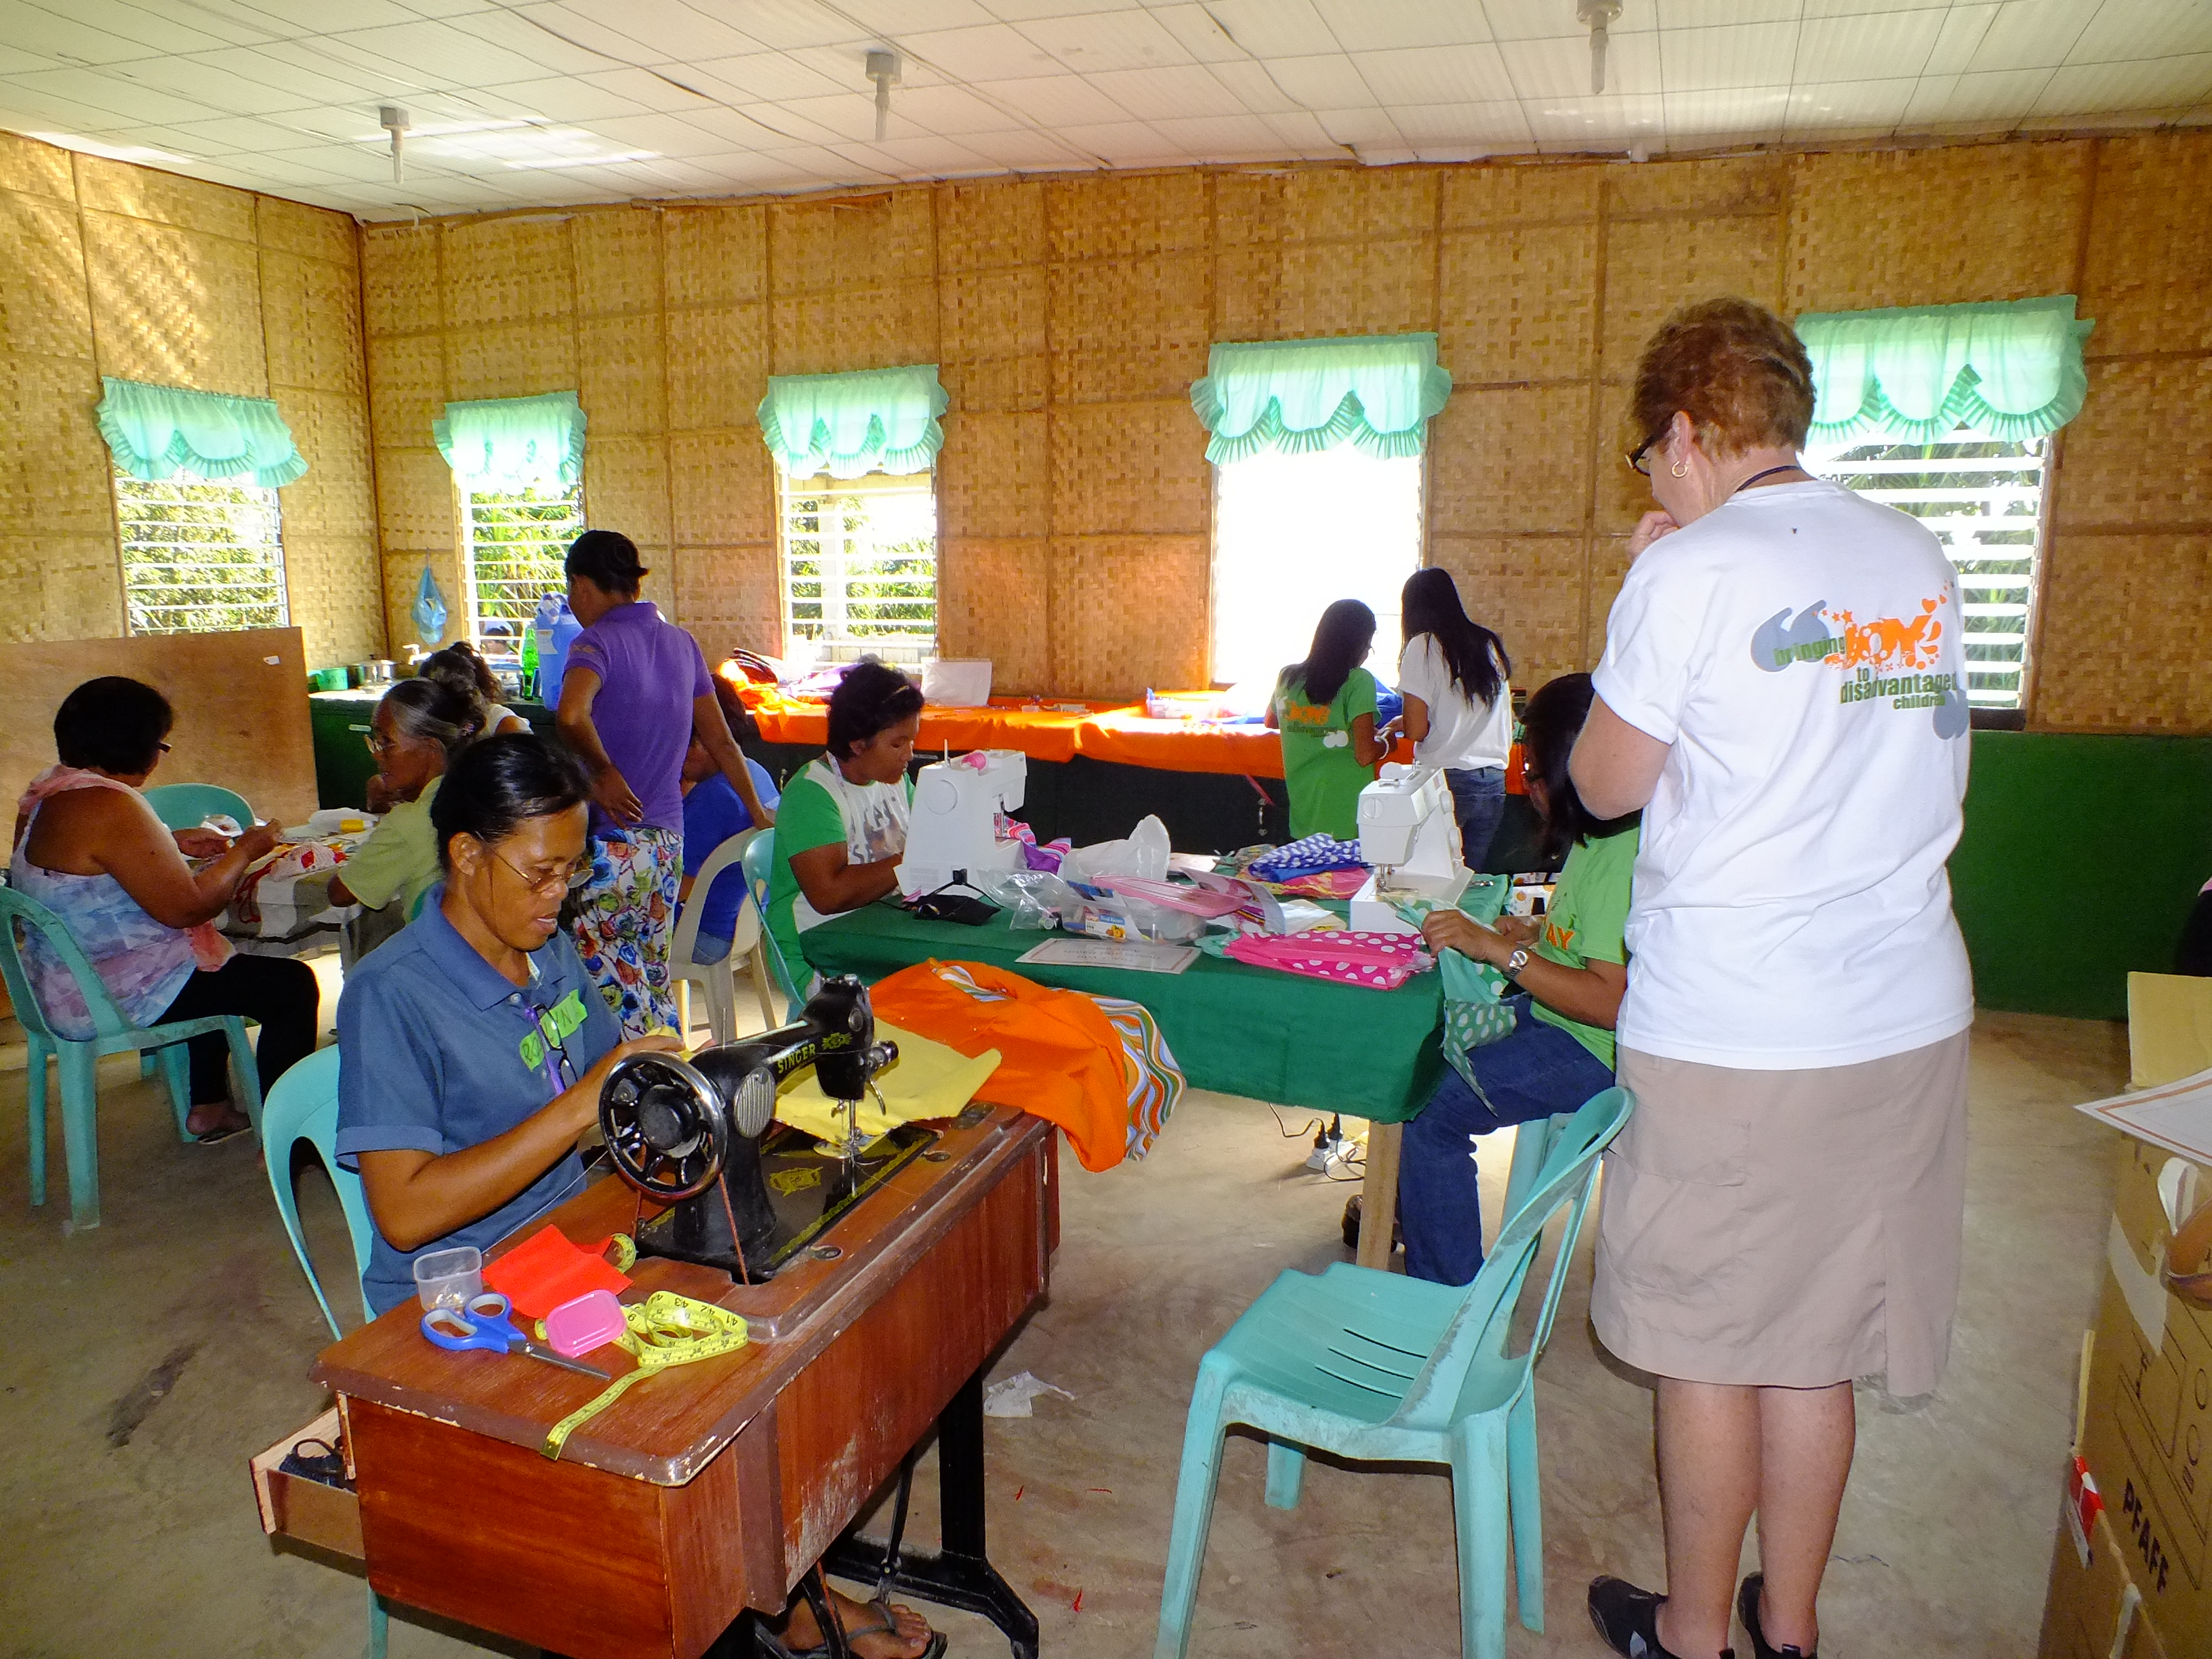 Community Sewing in full swing